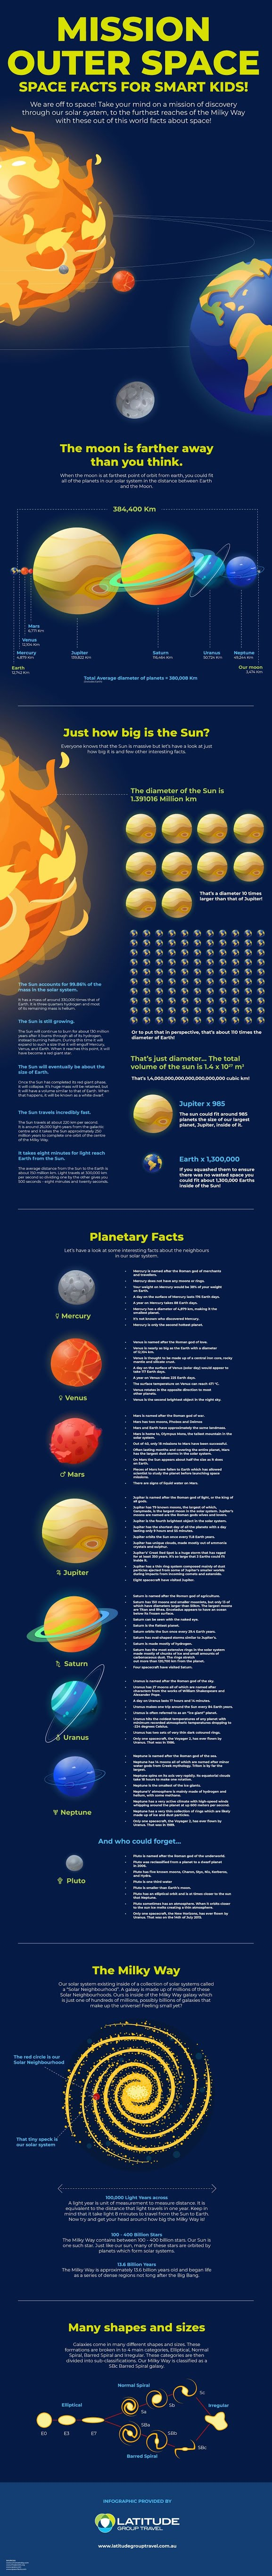 101 Space Facts For Smart Kids! #infographic